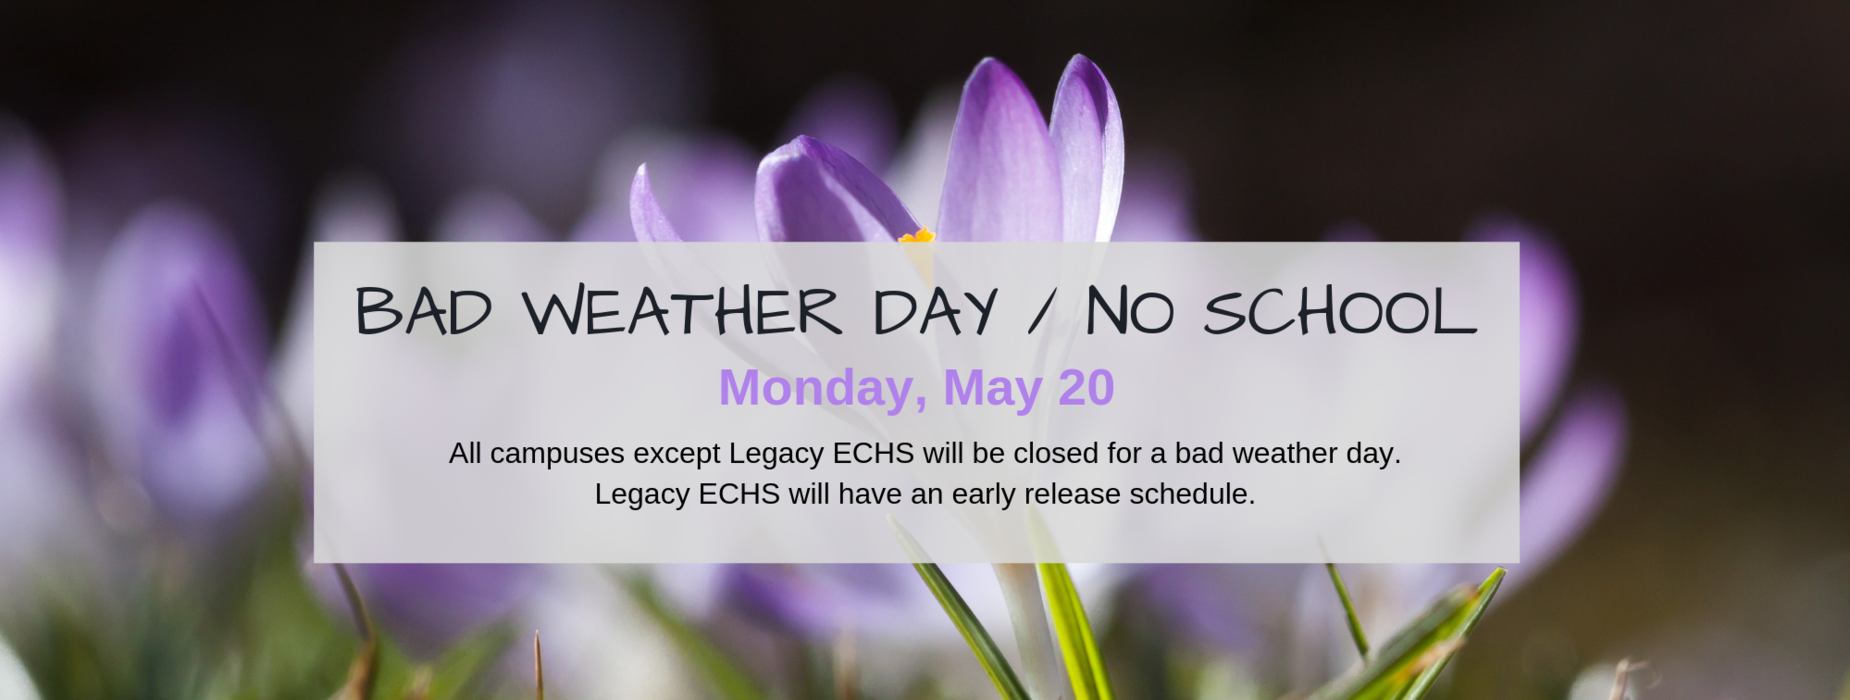 Bad Weather Day- May 20